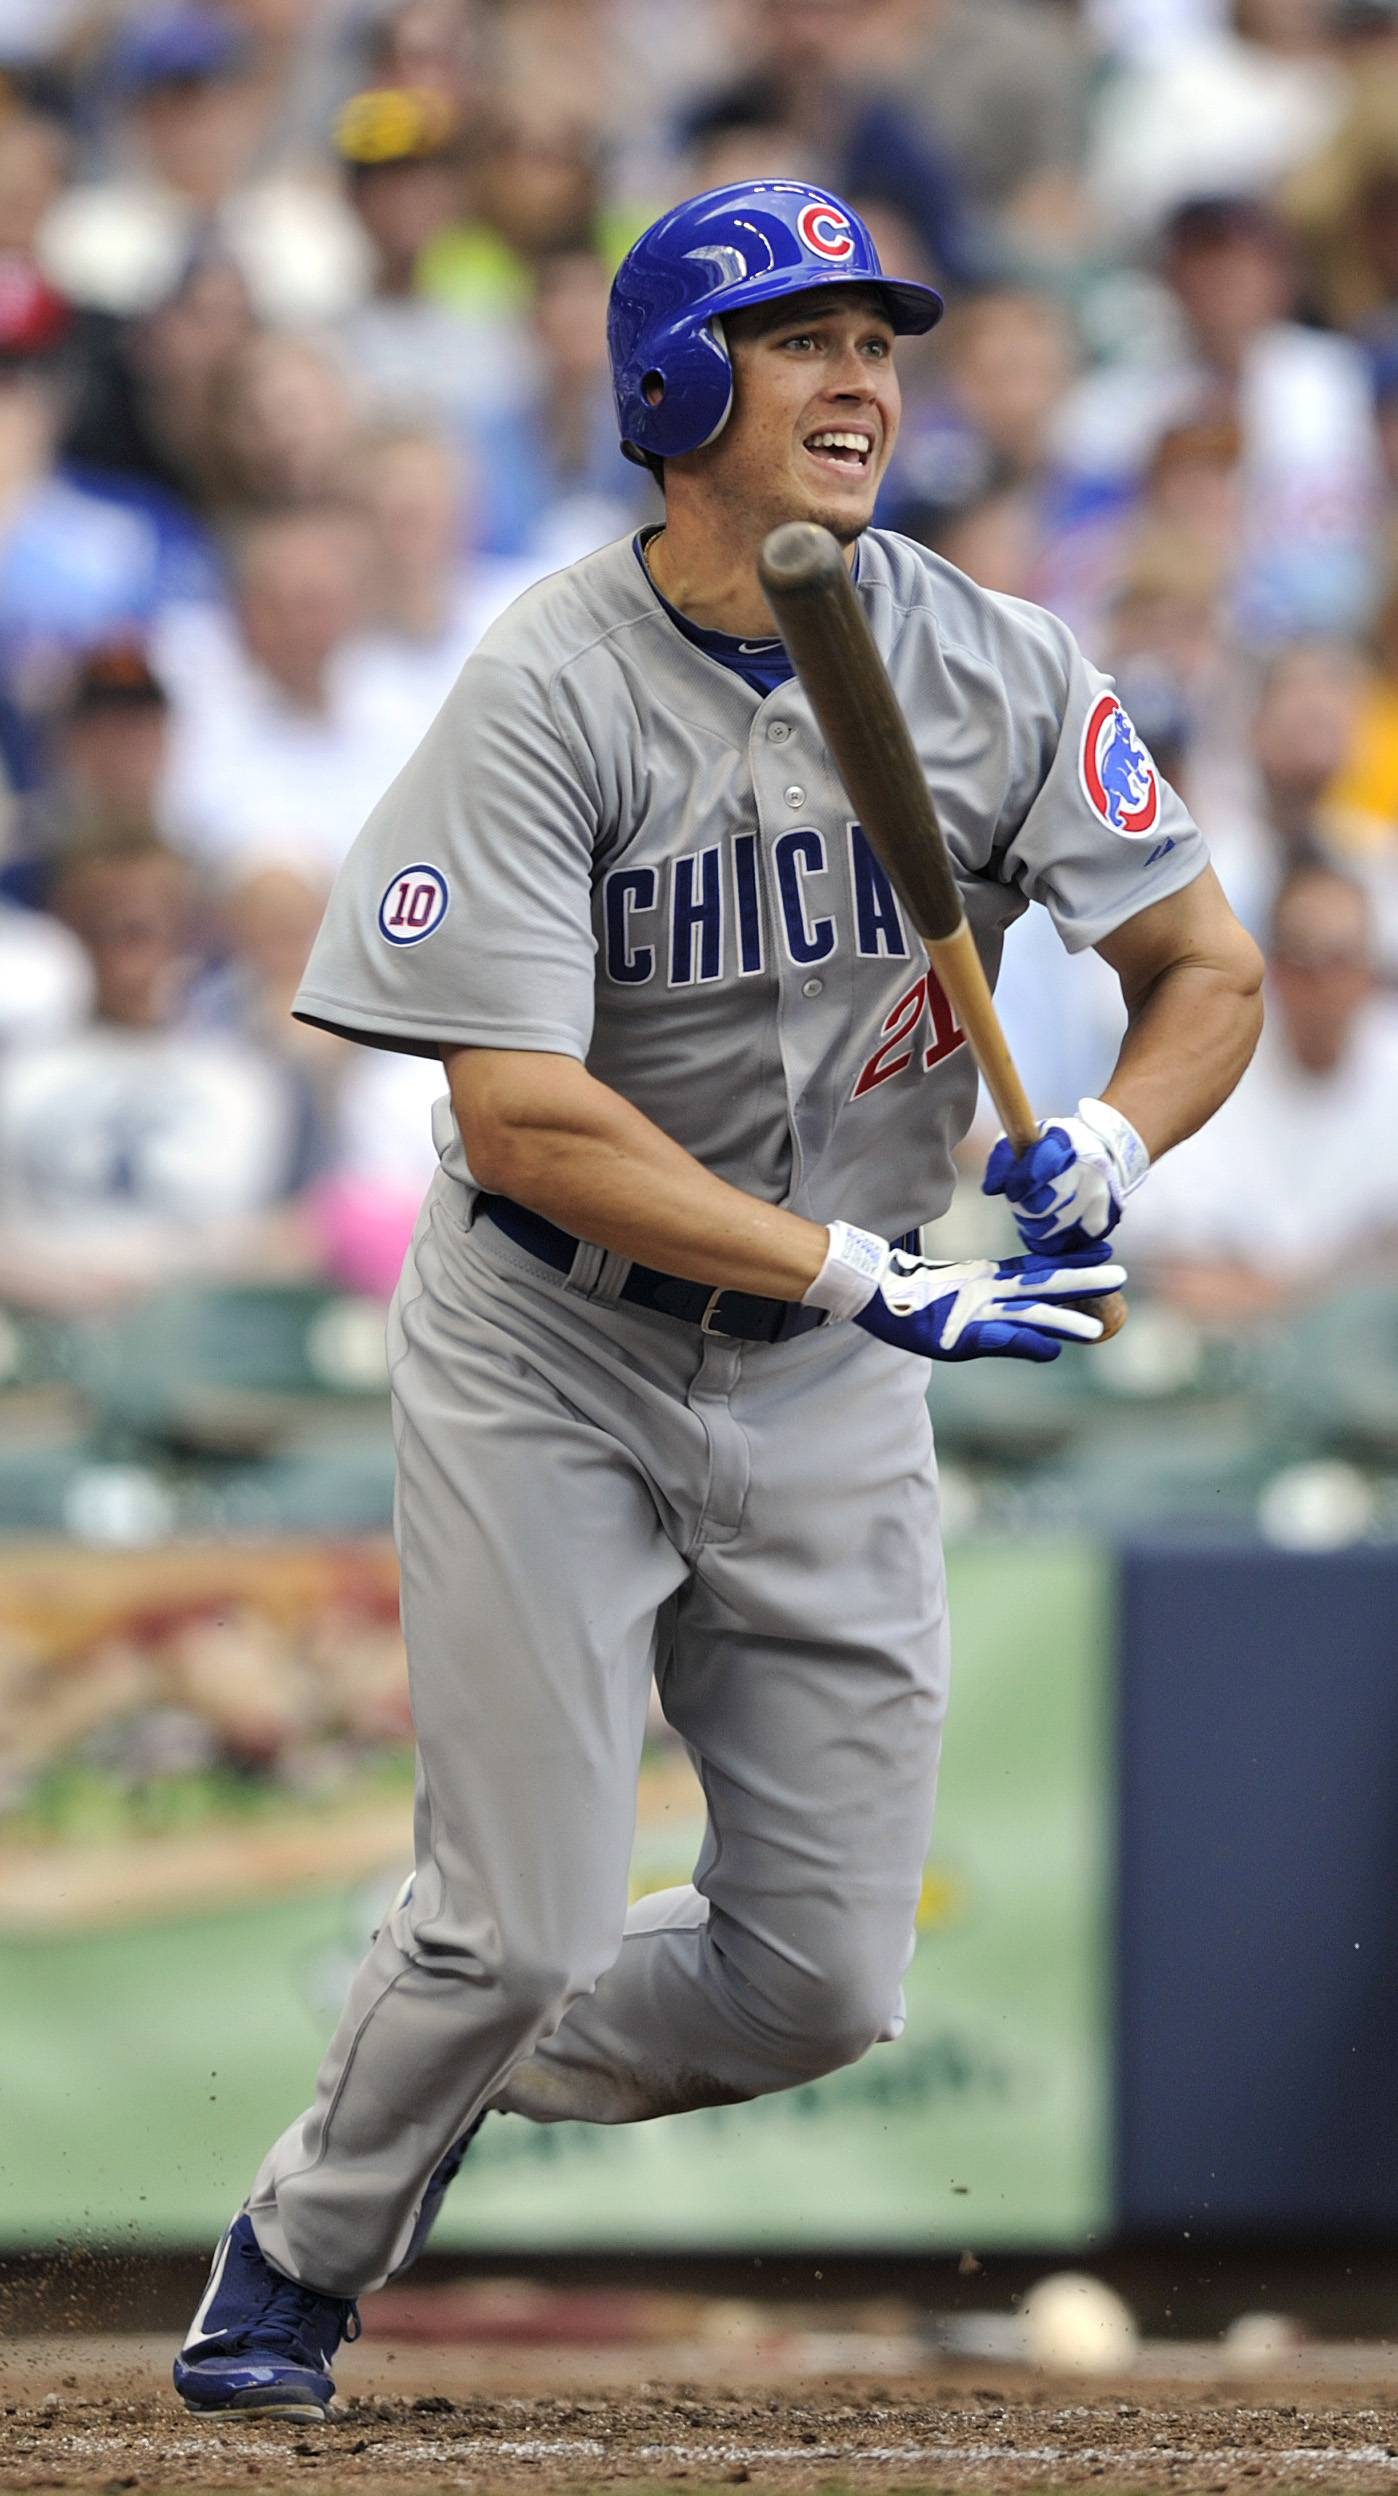 Chicago Cubs' Tyler Colvin drives in a run with a groundout against the Milwaukee Brewers during the seventh inning in Milwaukee Sunday.